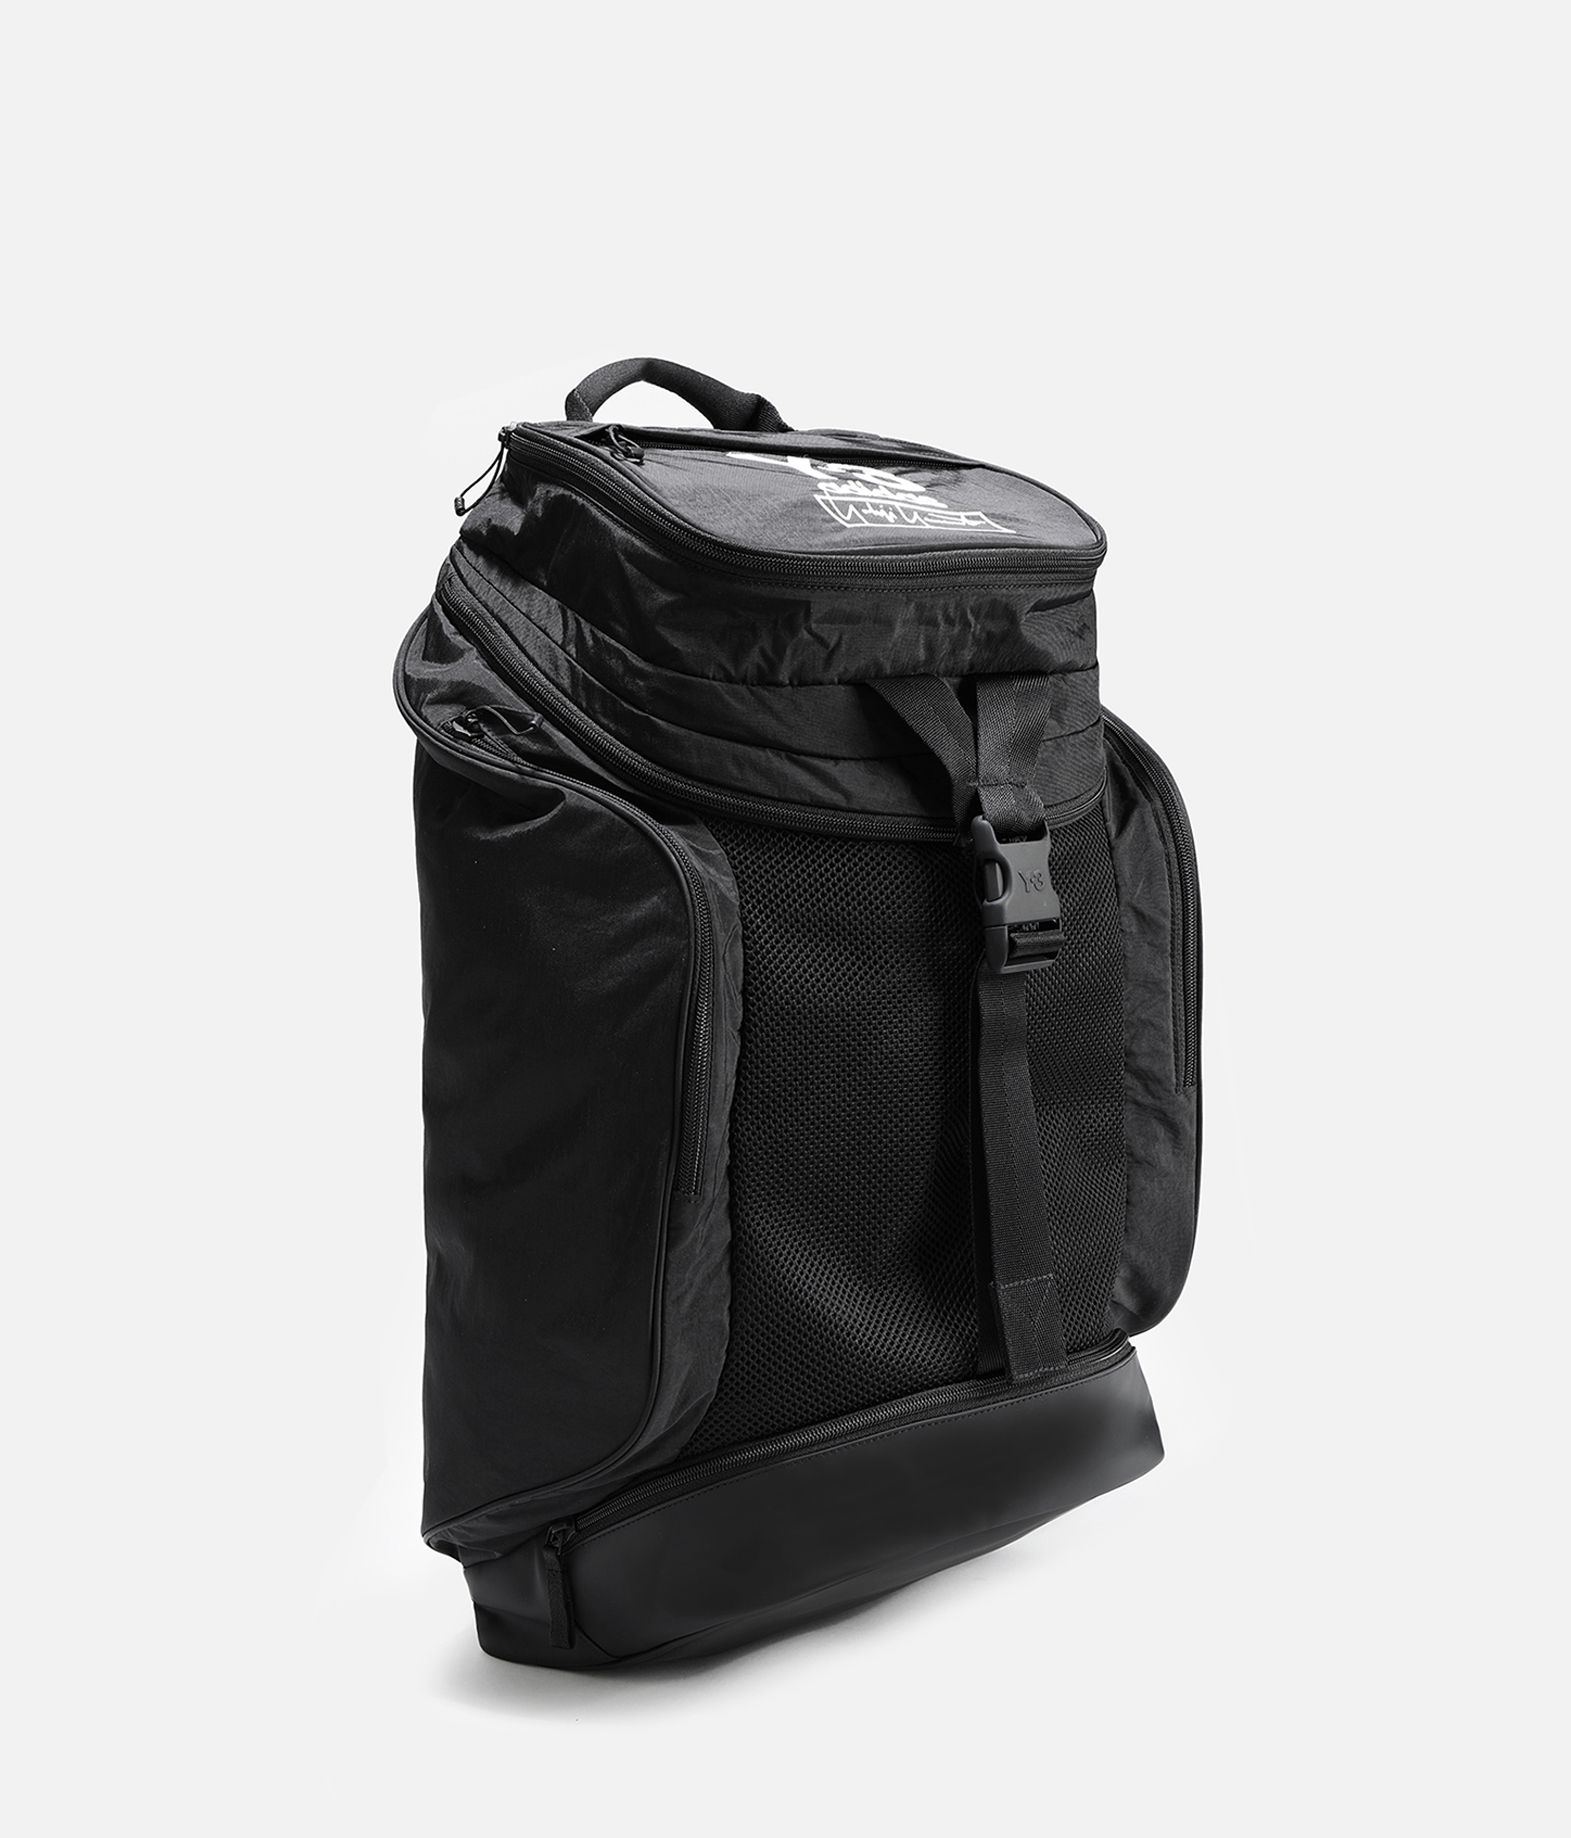 Y-3 Y-3 Travel Backpack リュックサック E d